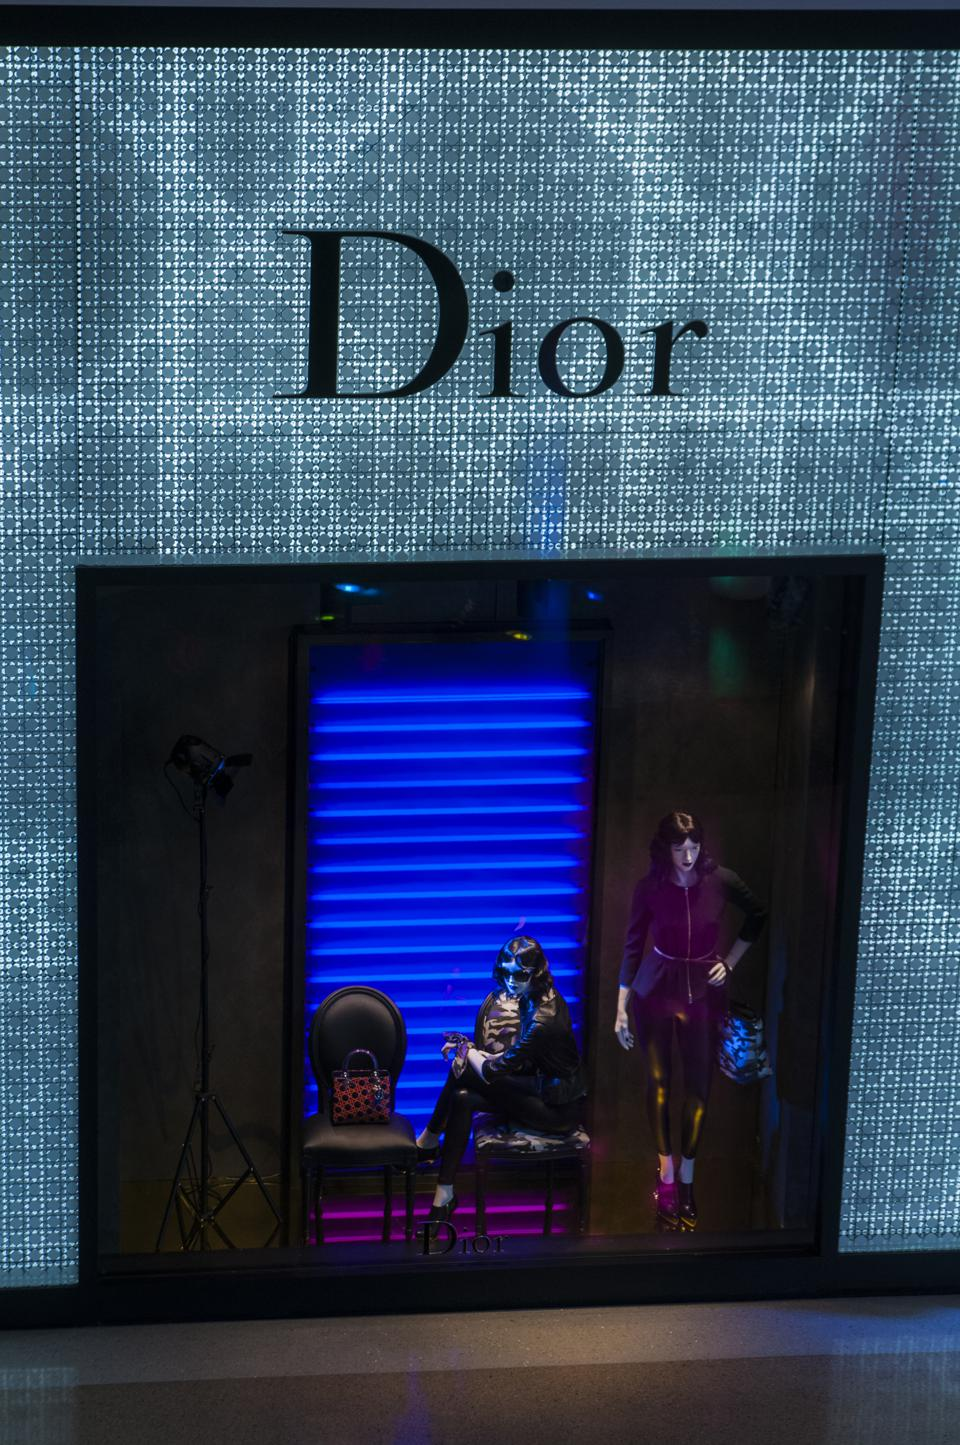 Christian Dior storefront in Vegas